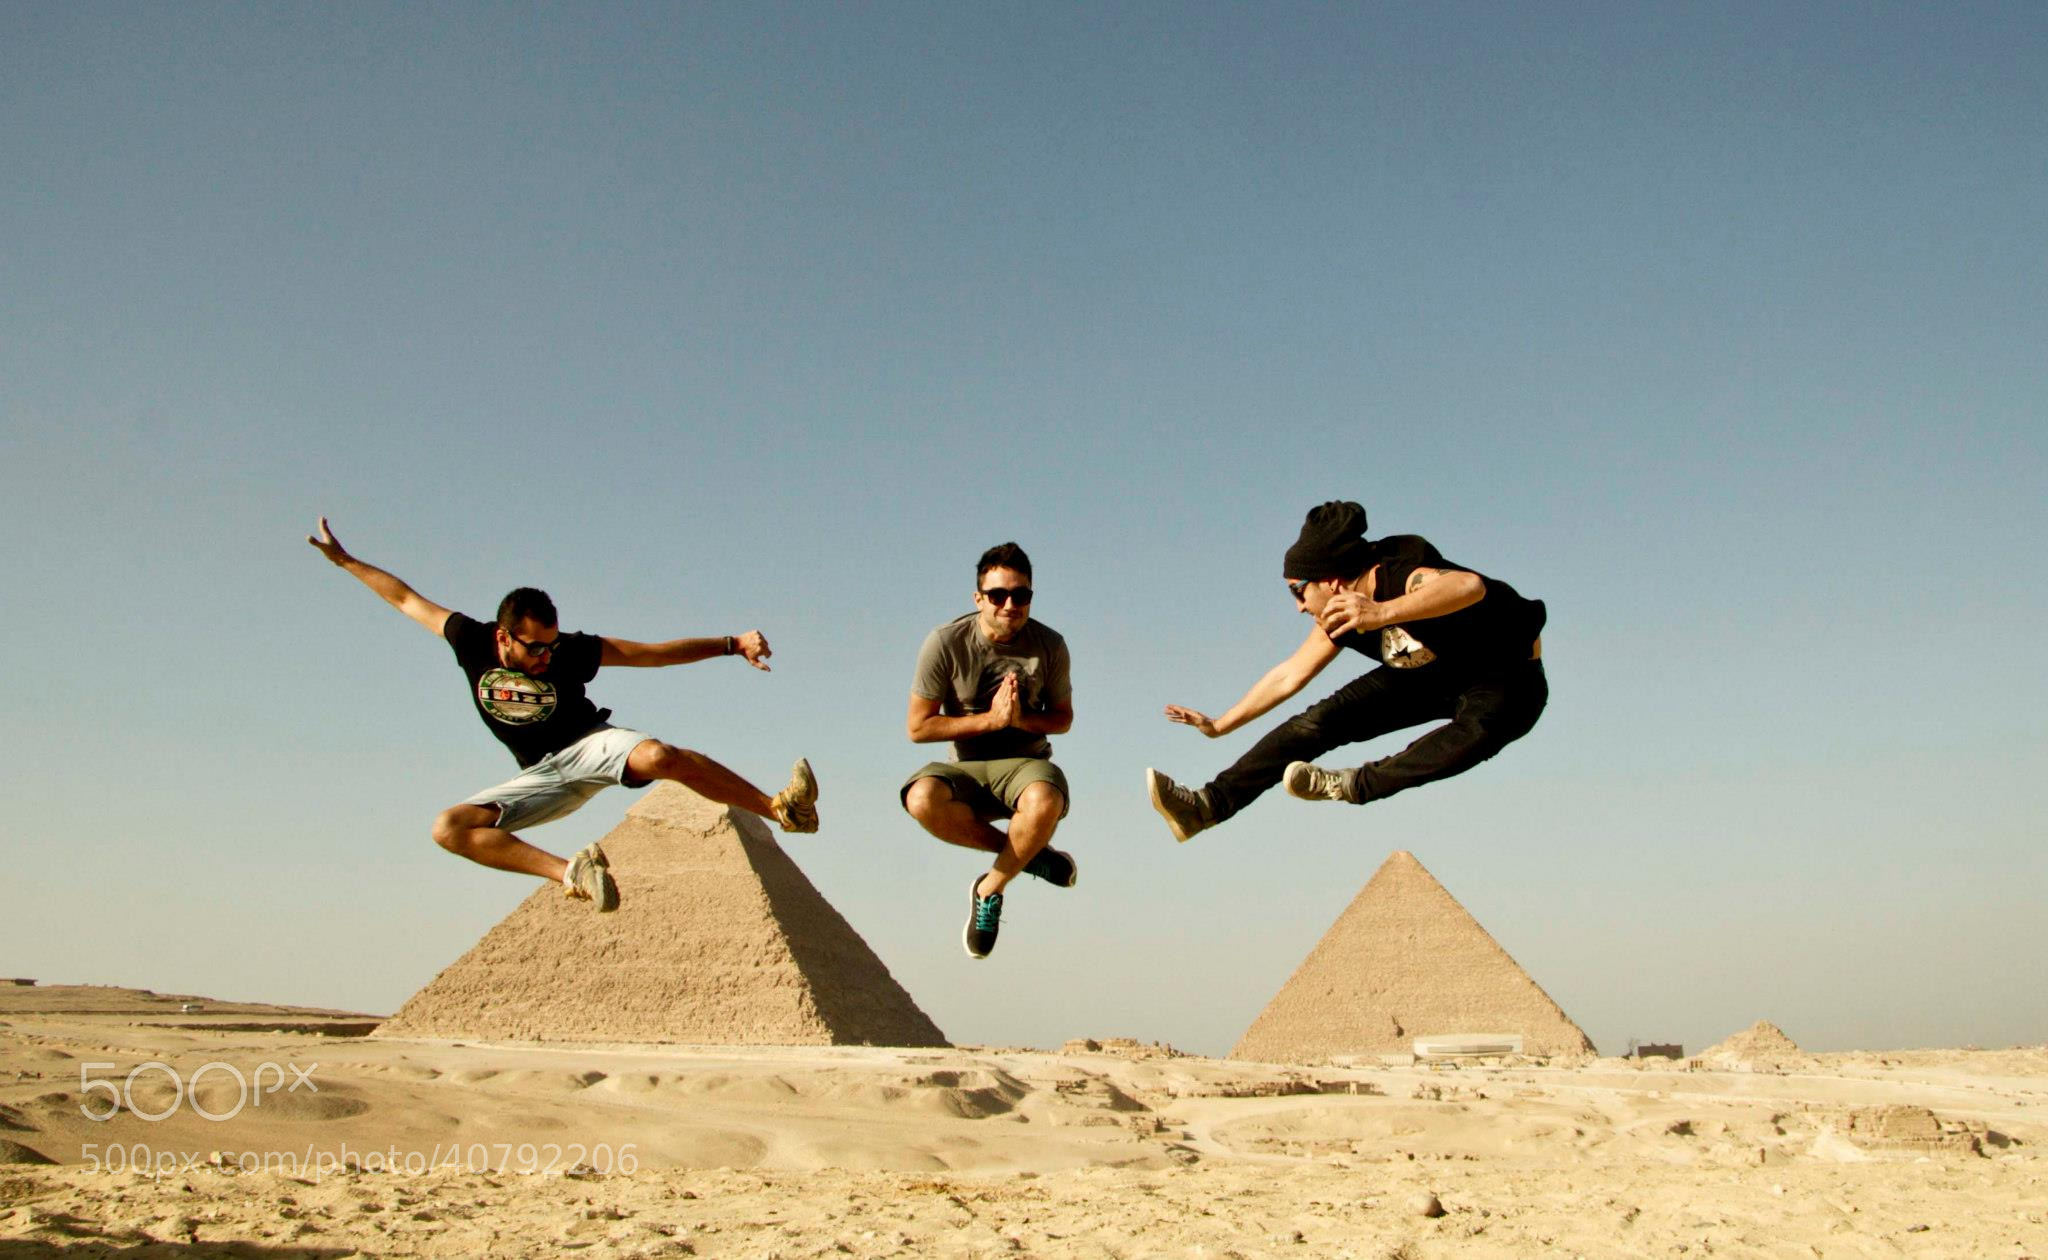 Photograph No gravity in Cairo by Fernando Gonsales on 500px